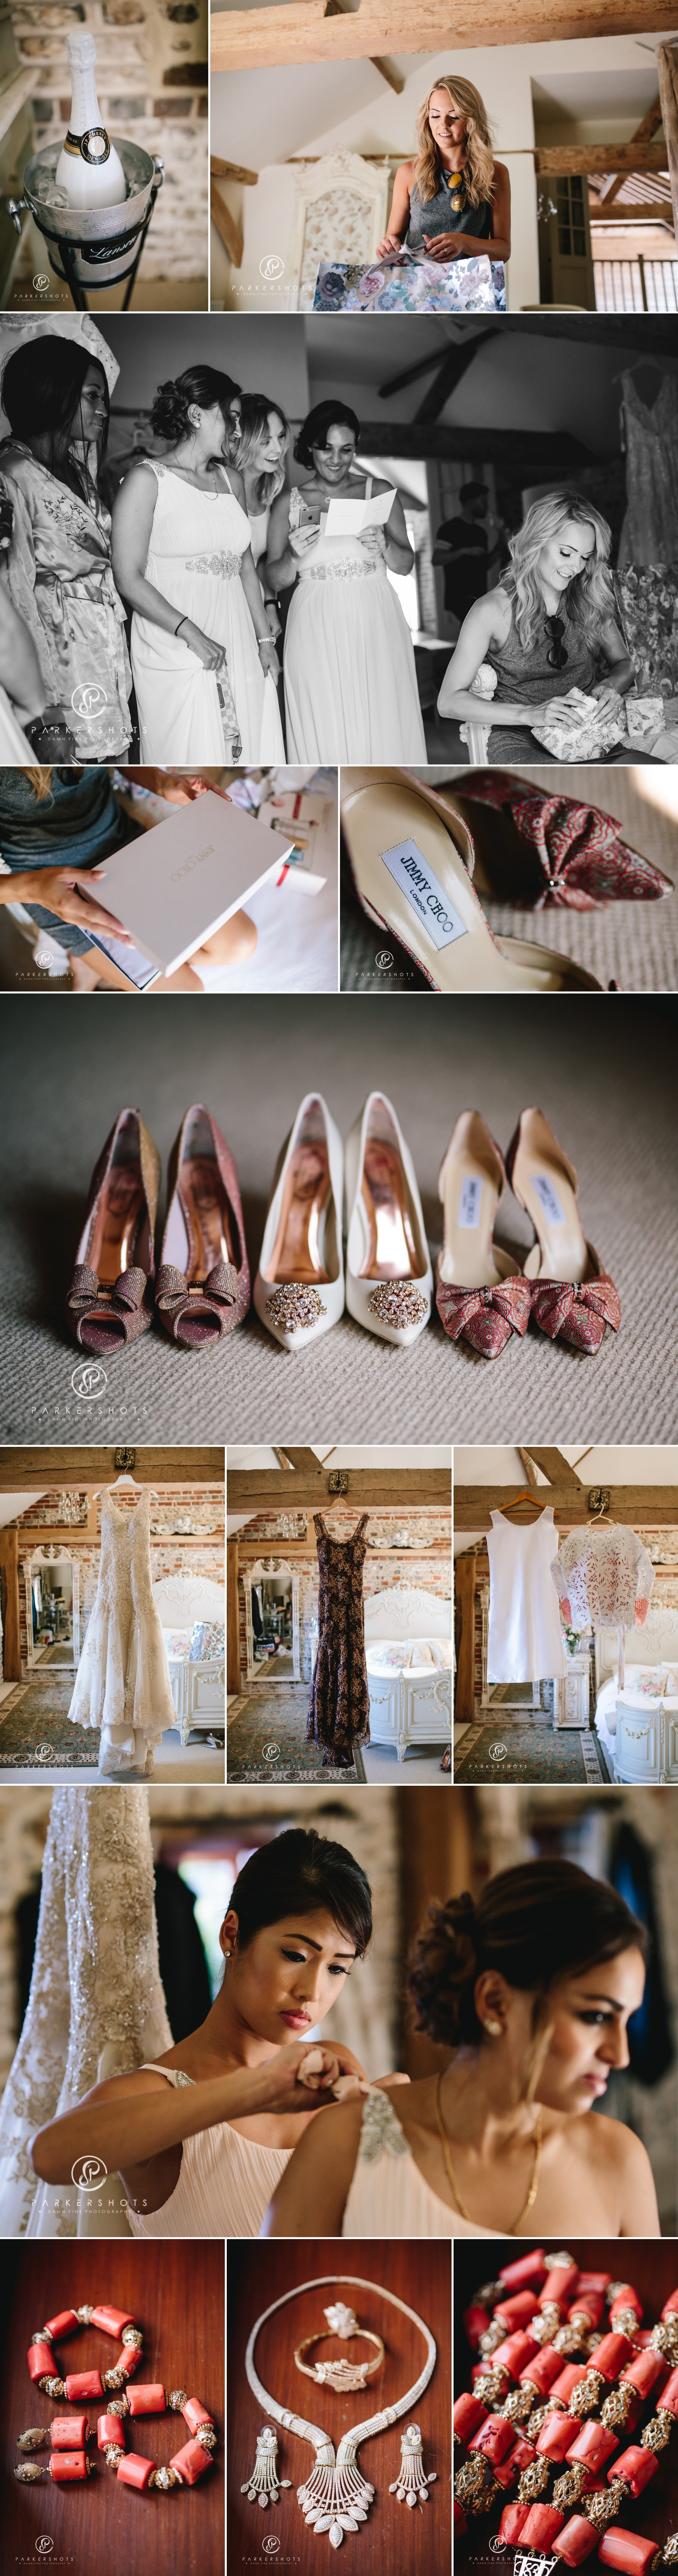 Bridal prep photography at Upwaltham Barns